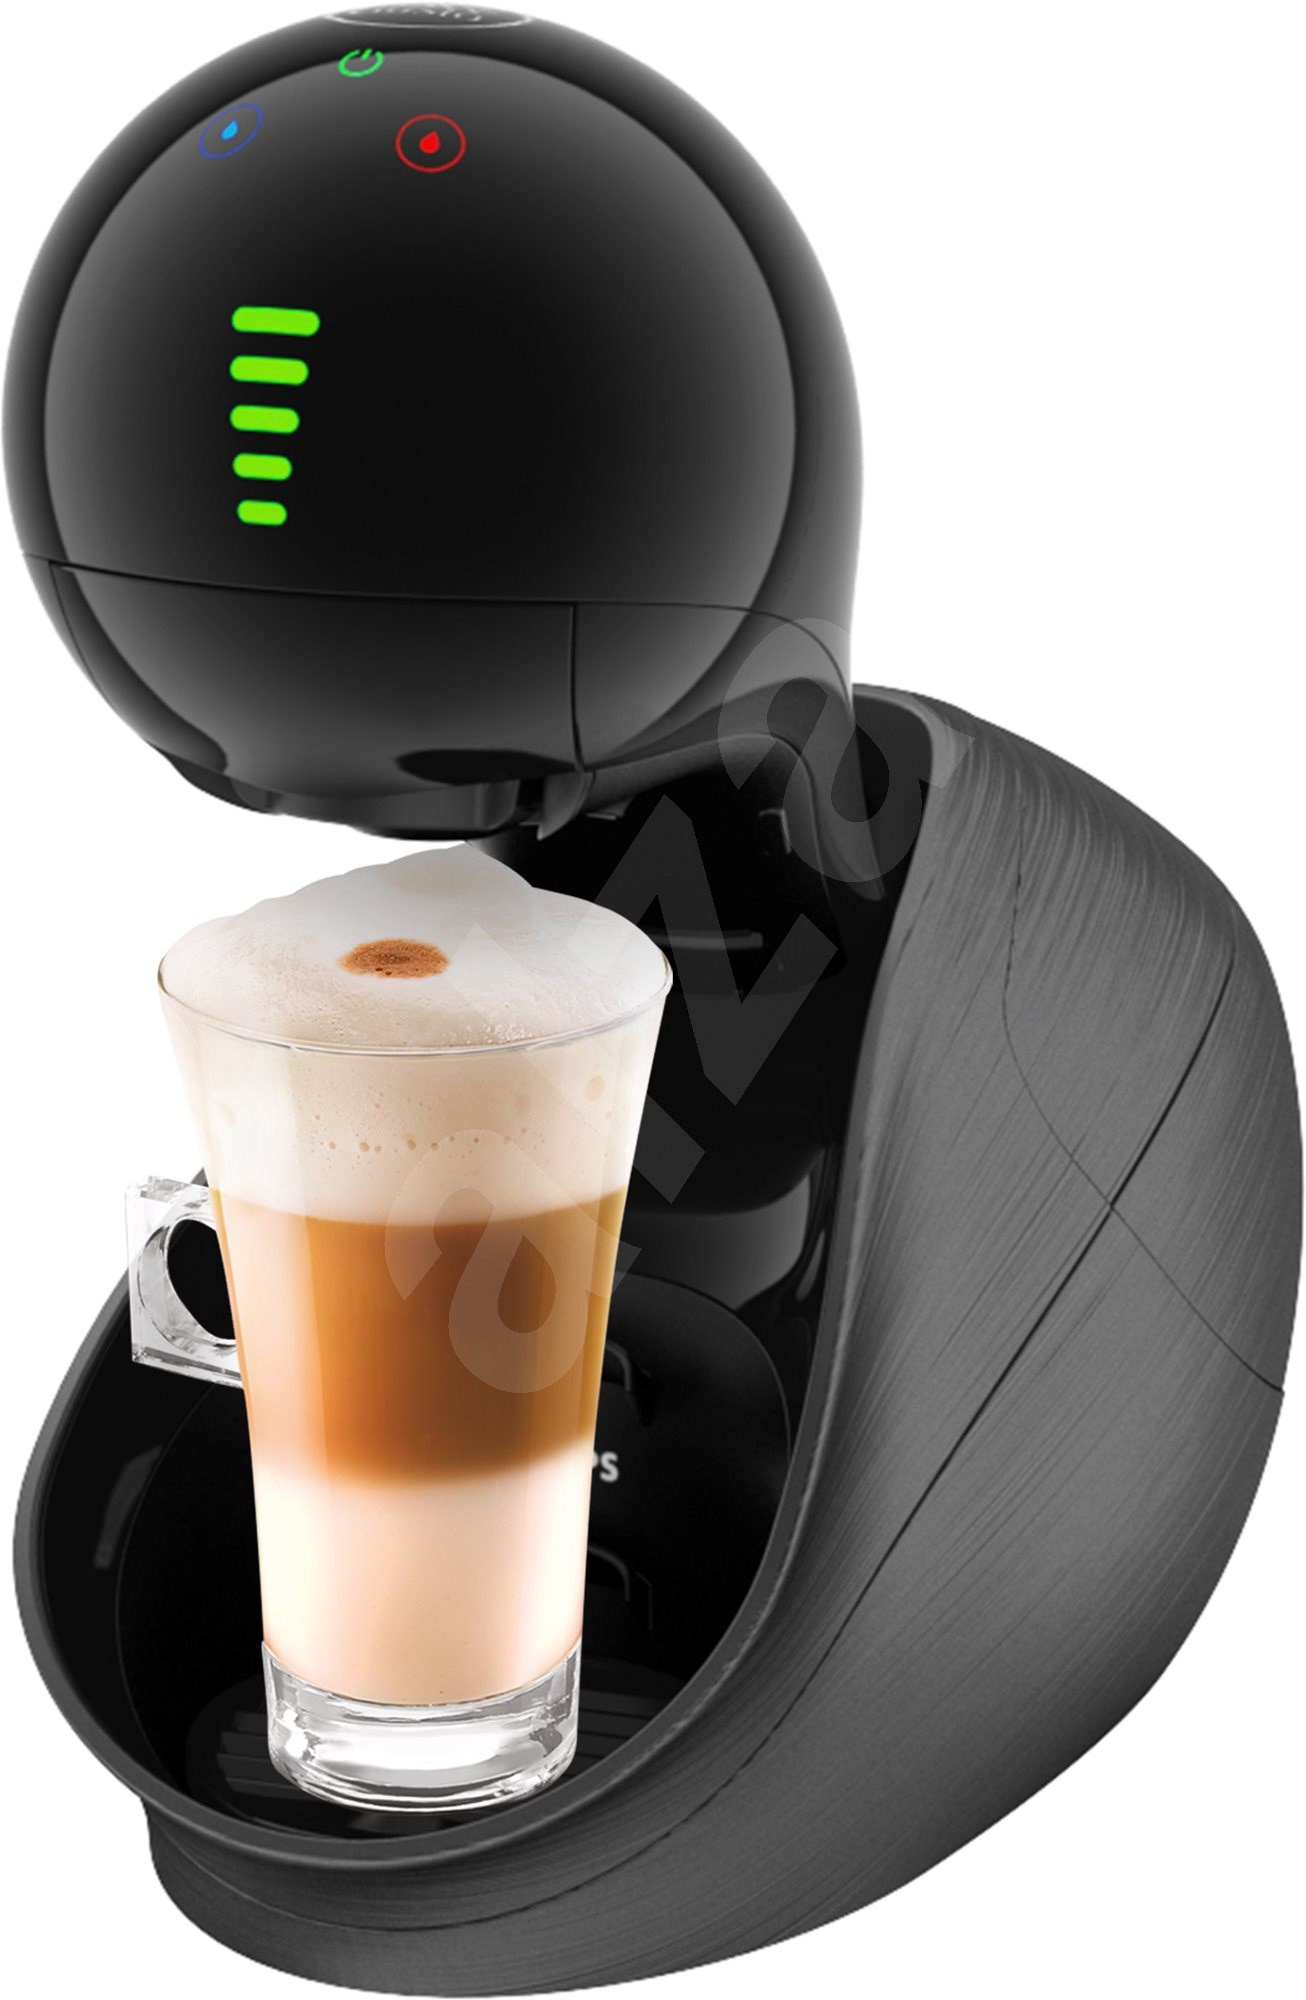 krups nescafe dolce gusto movenza kp600831 black capsule coffee machine. Black Bedroom Furniture Sets. Home Design Ideas